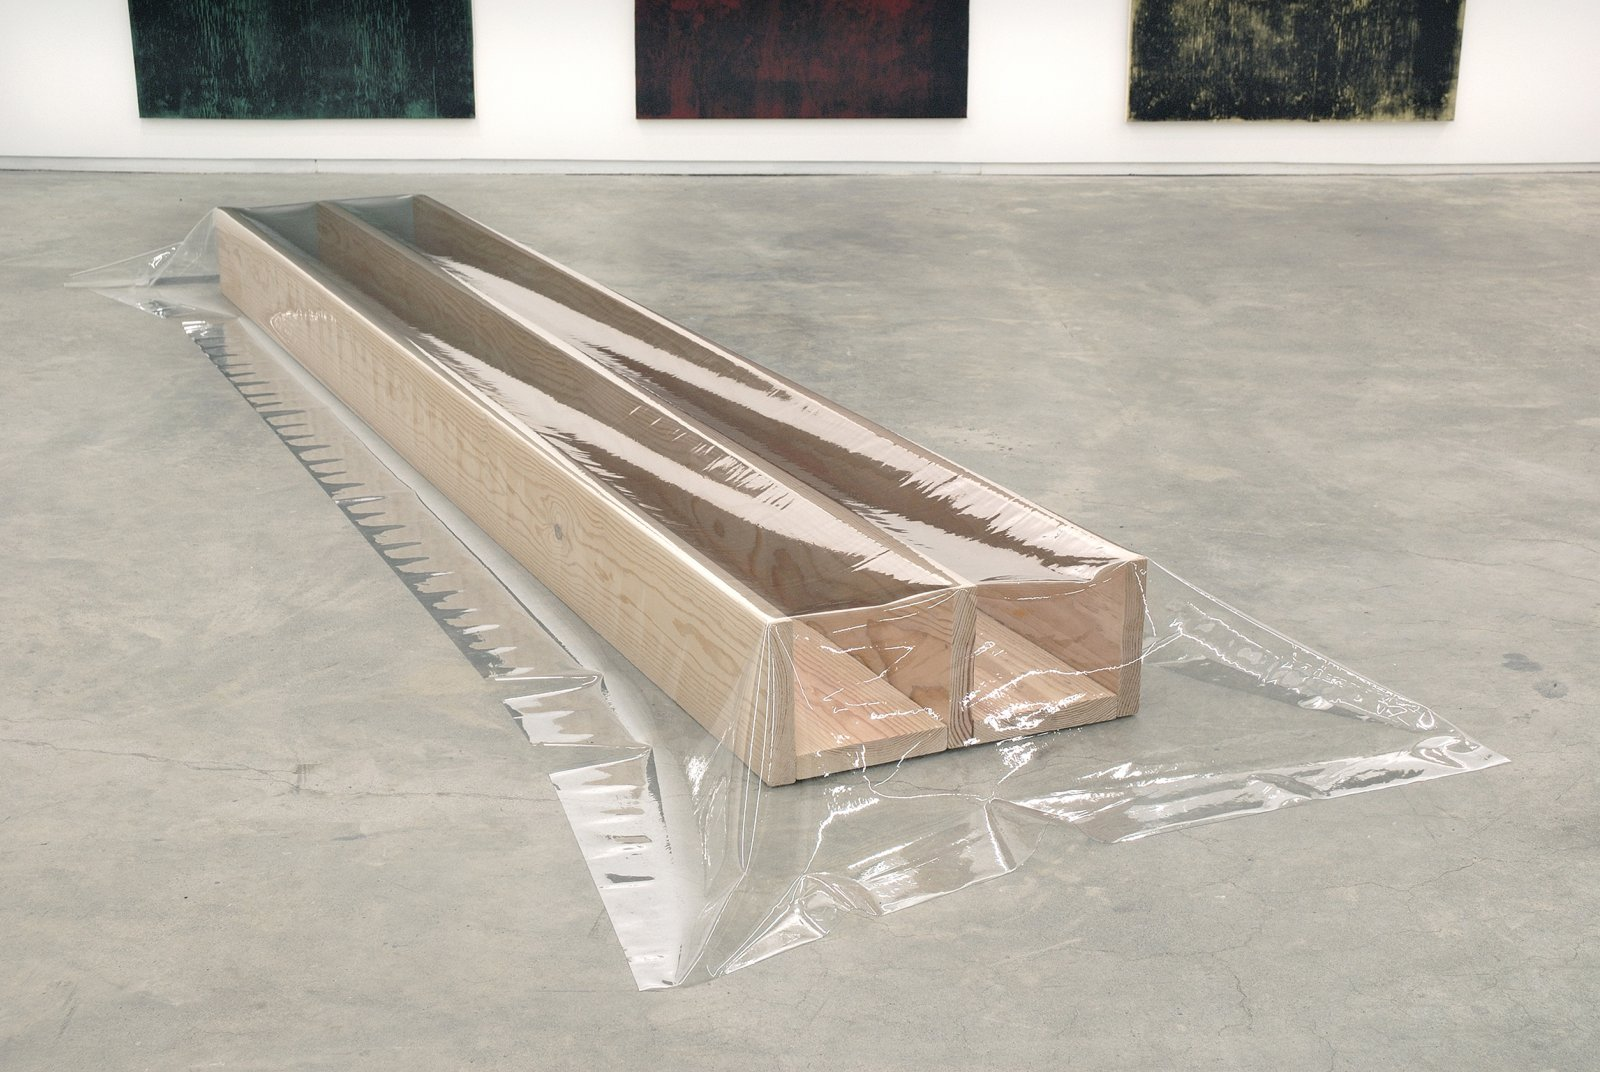 ​Ian Wallace, Untitled (Plank Piece), 1969–2007, 5 fir boards with vinyl, 9 x 47 x 156 in. (23 x 119 x 396 cm) by Ian Wallace